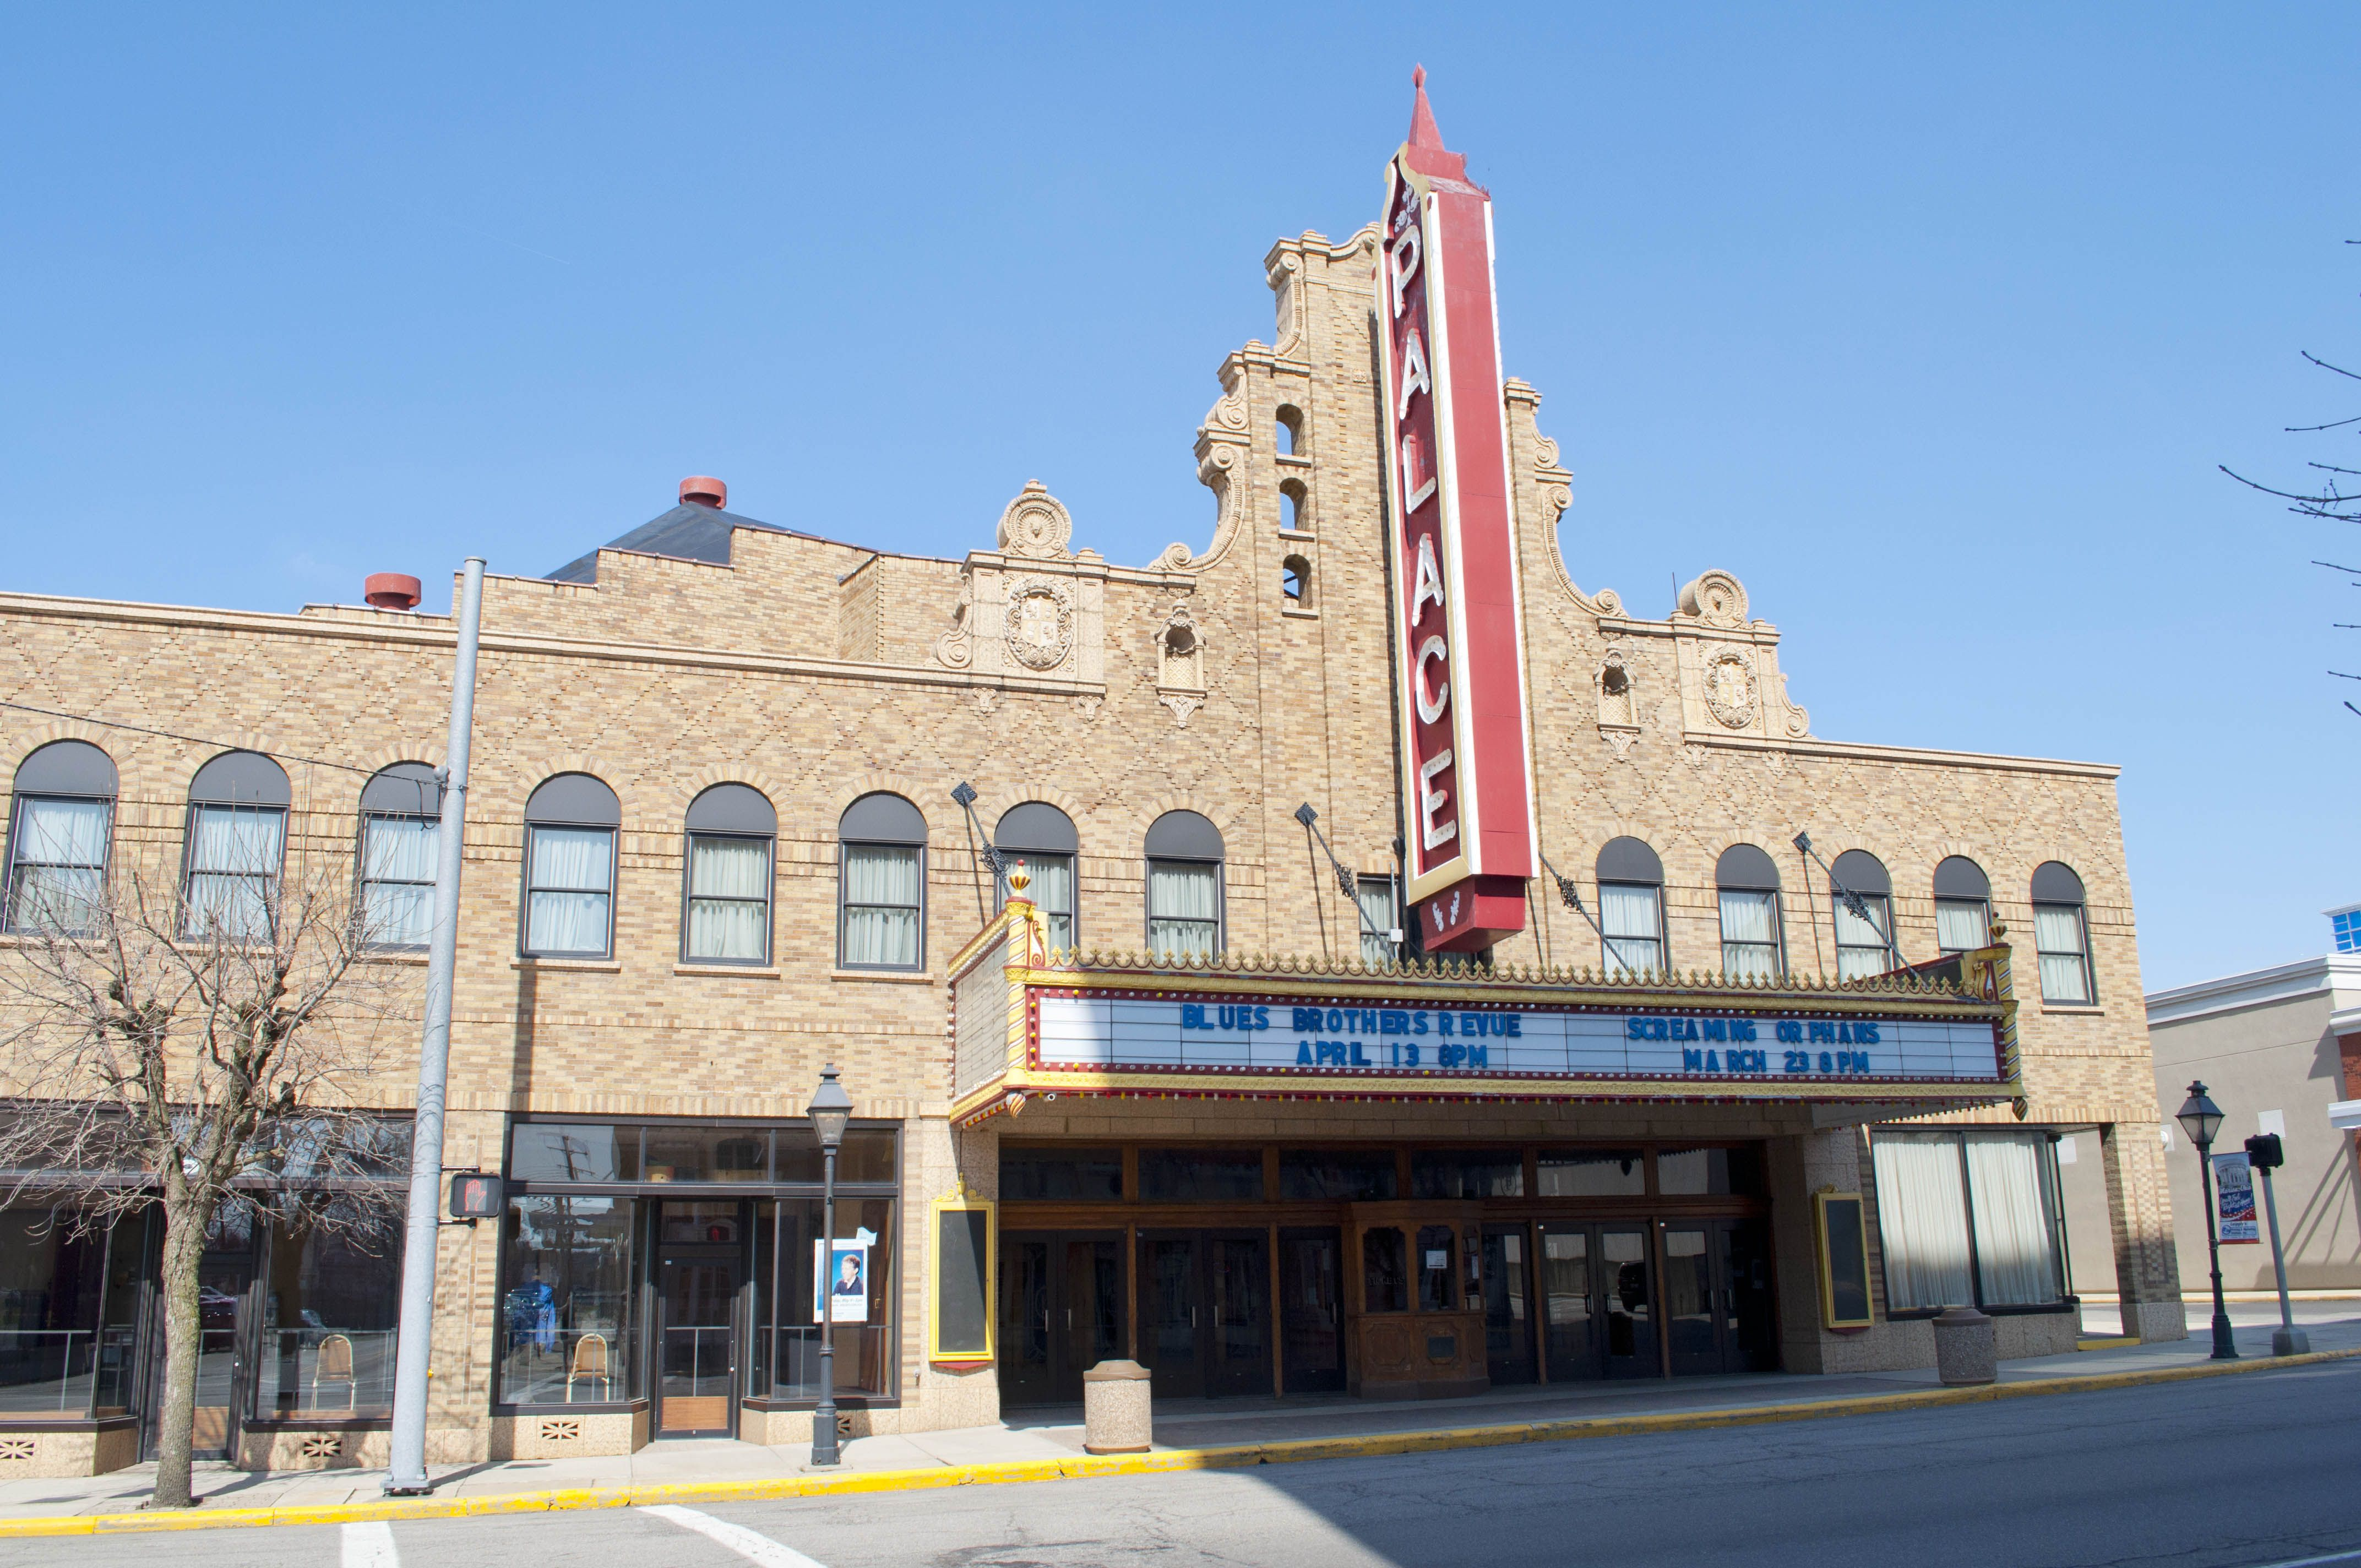 The Palace Theatre In Marion Ohio Ohio History Ferry Building